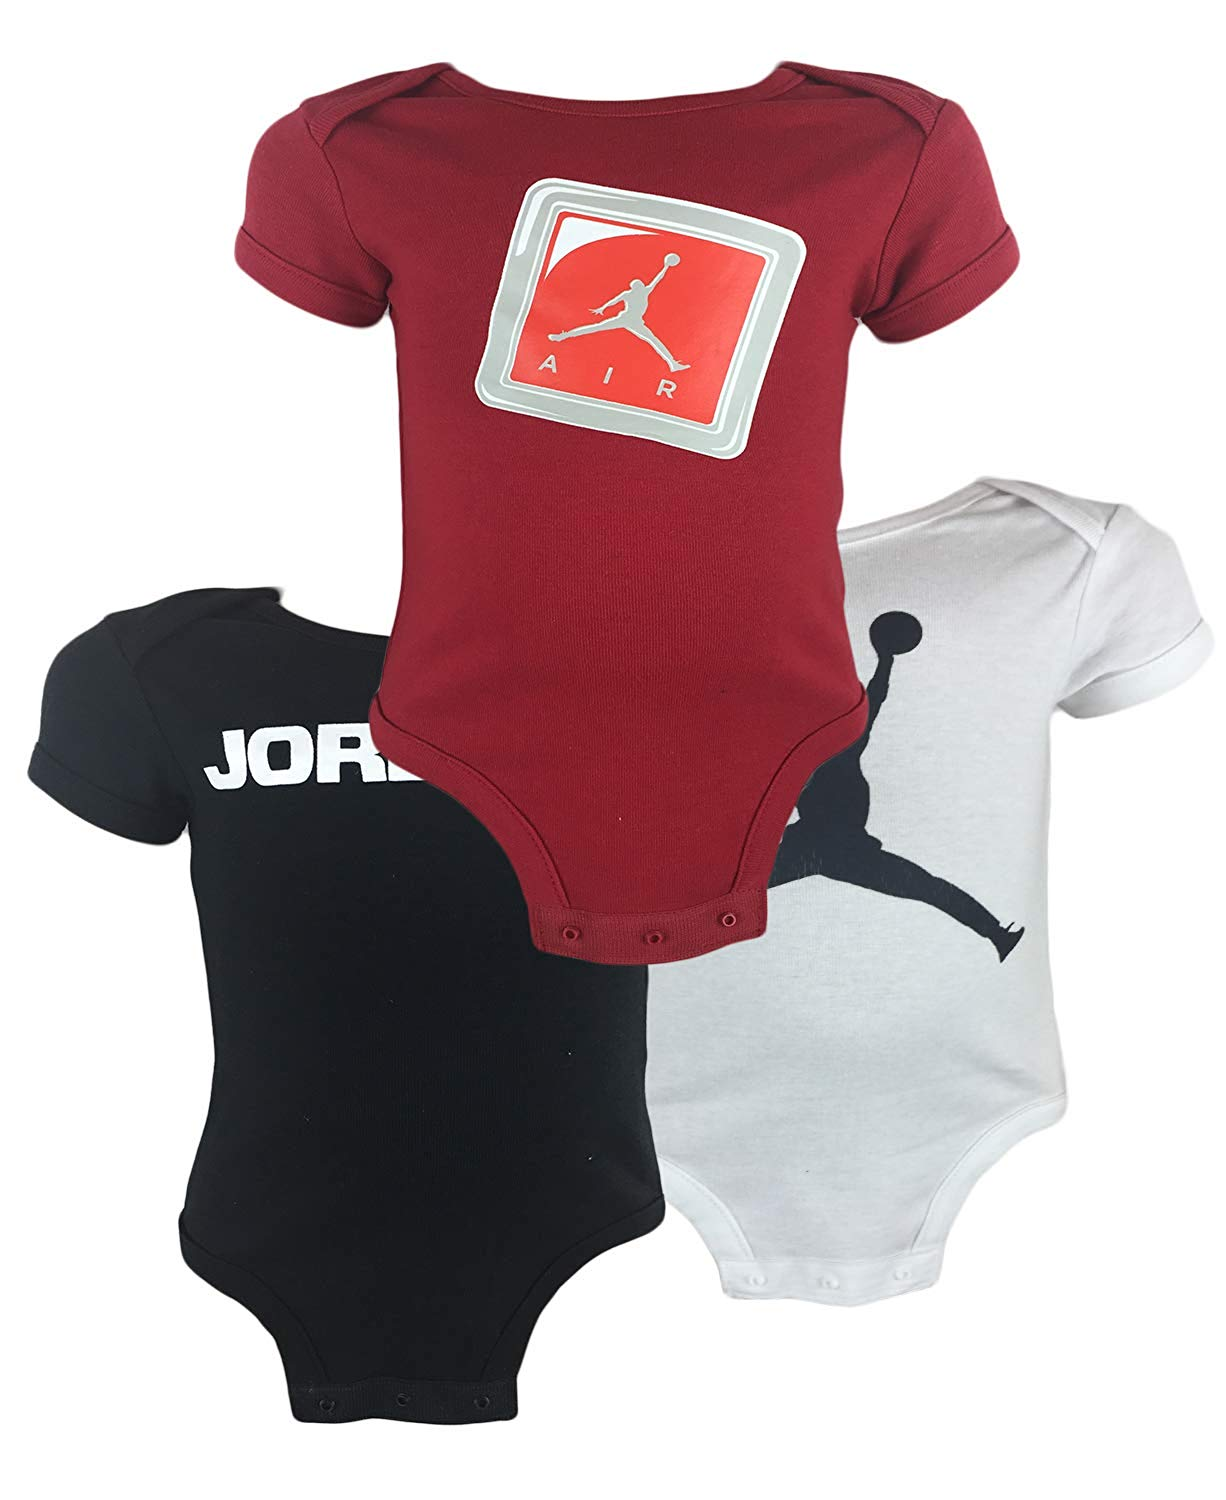 8d5bc6852c3ab2 Kids Boys Air Jordan Infant Baby Bodysuit 3 Piece Set - Baby Clothes ...